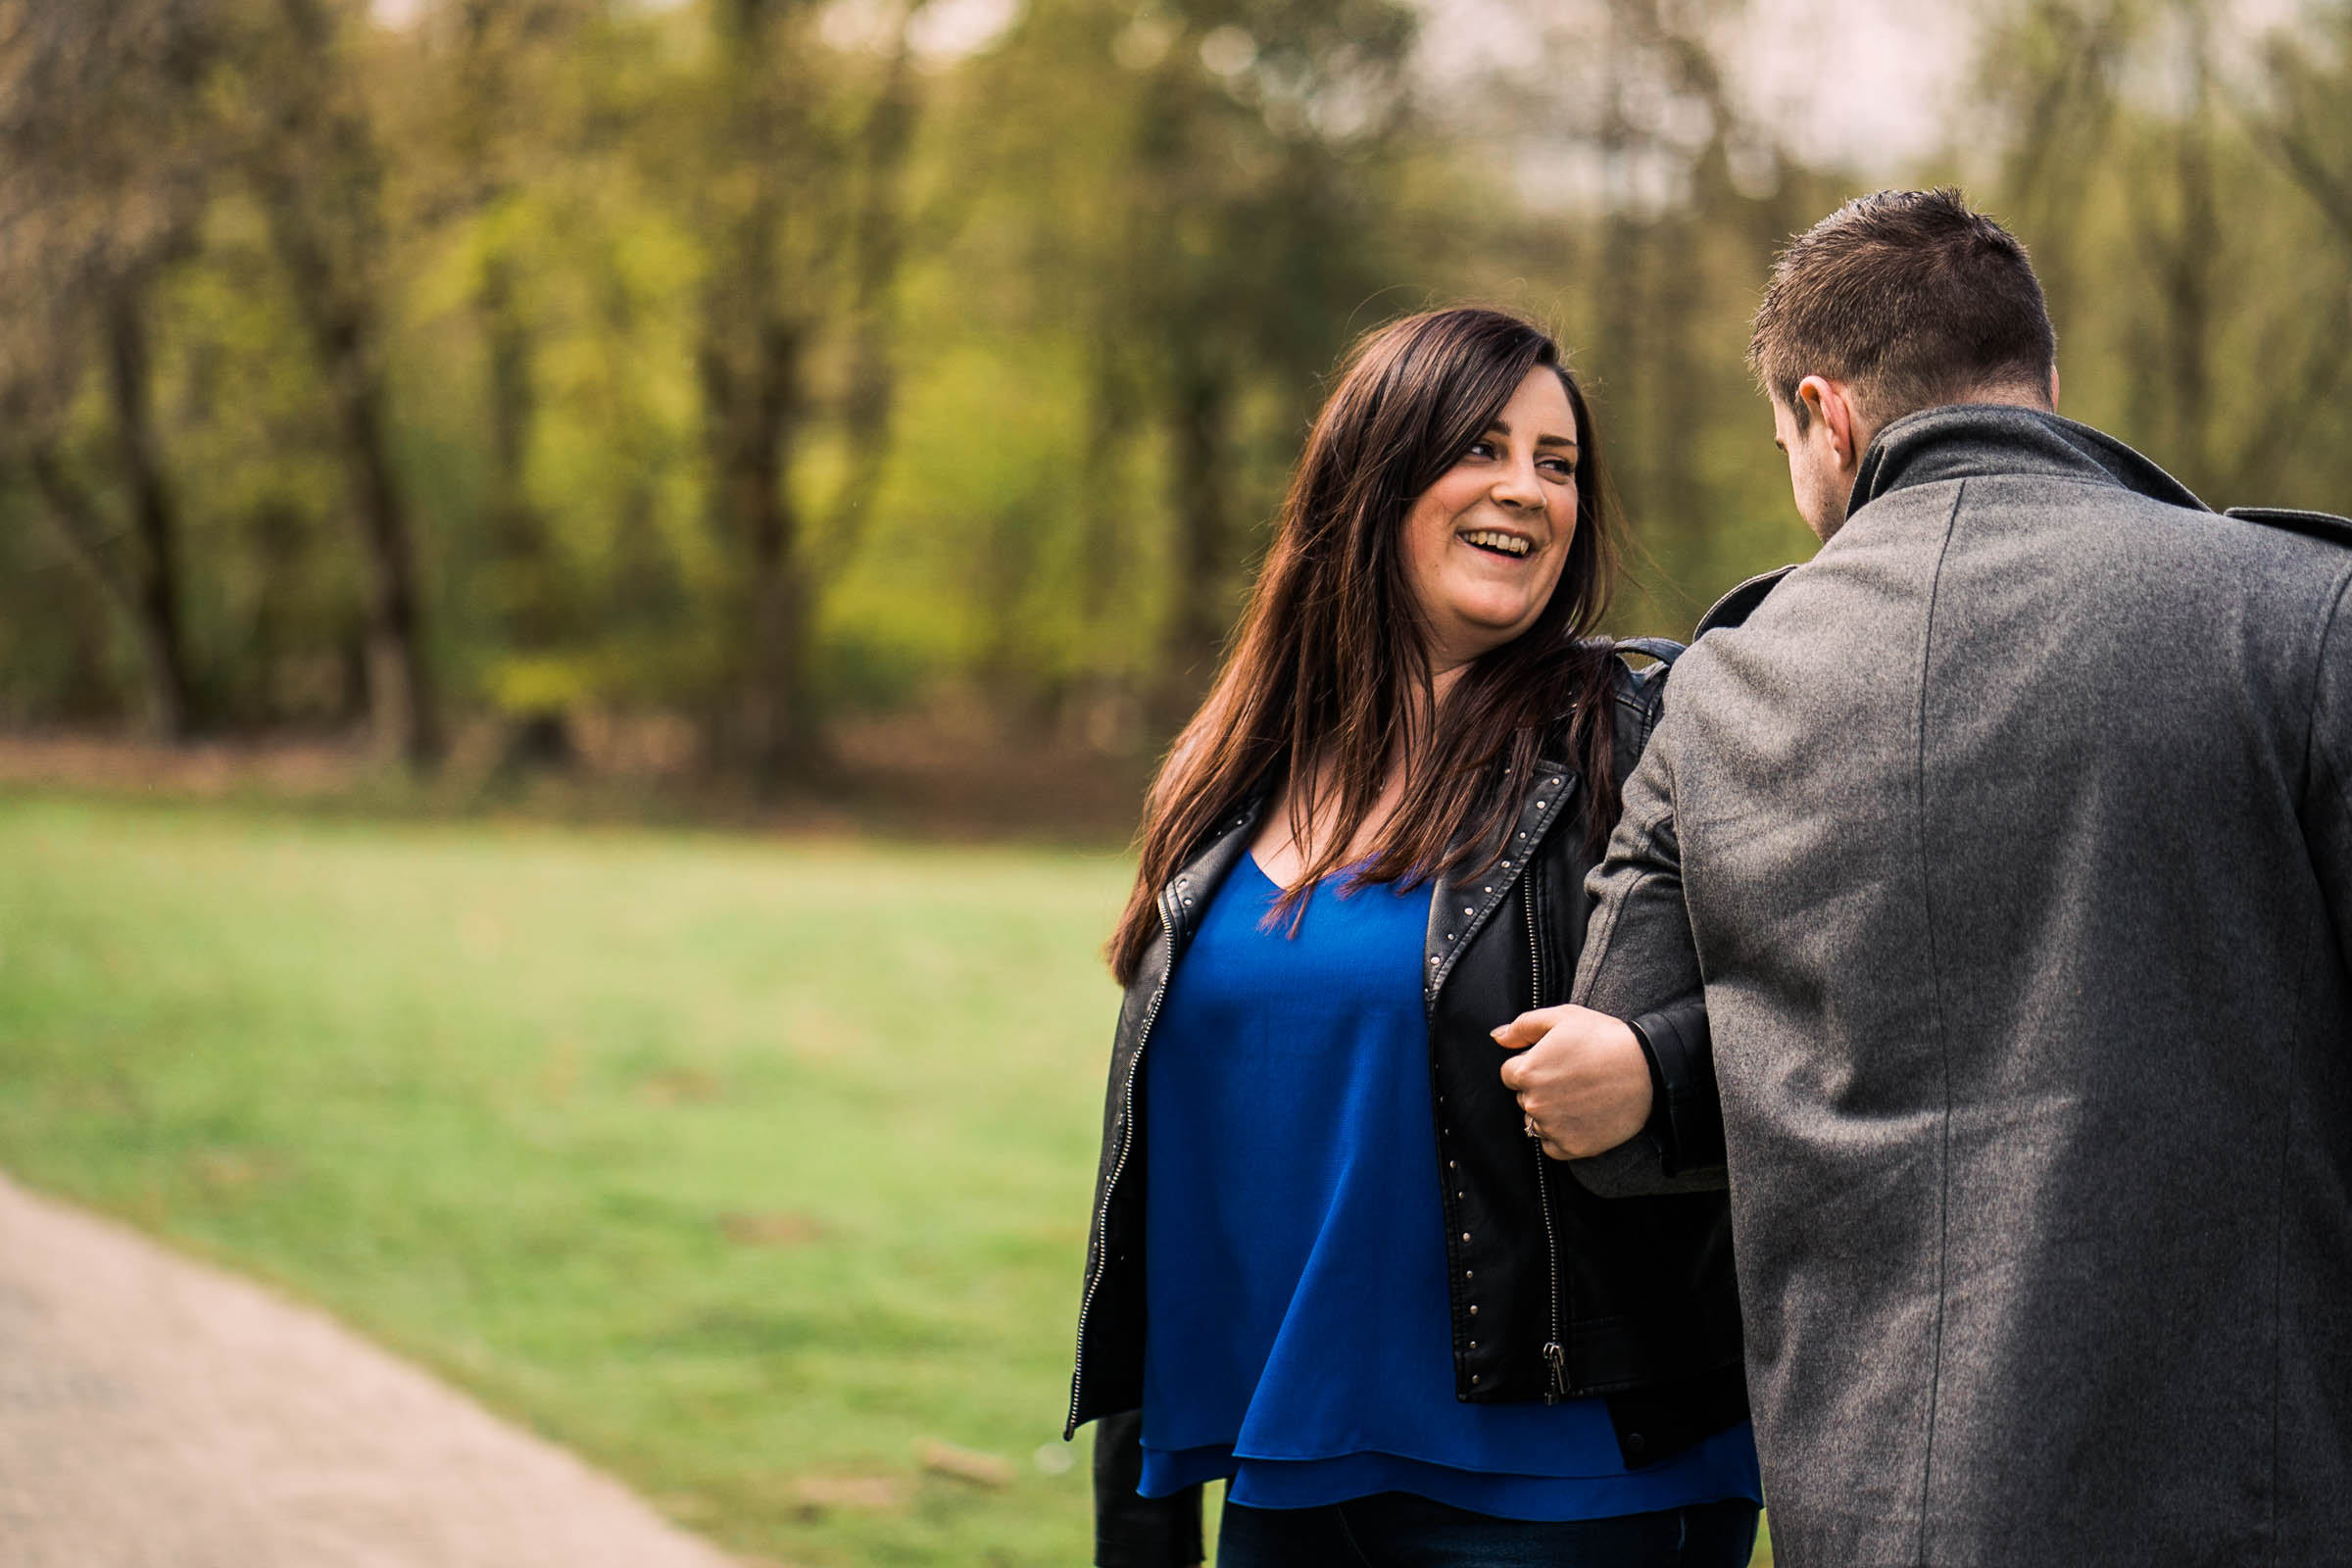 scottish-engagement-photography-elopement-dearlyphotography (40 of 45).jpg